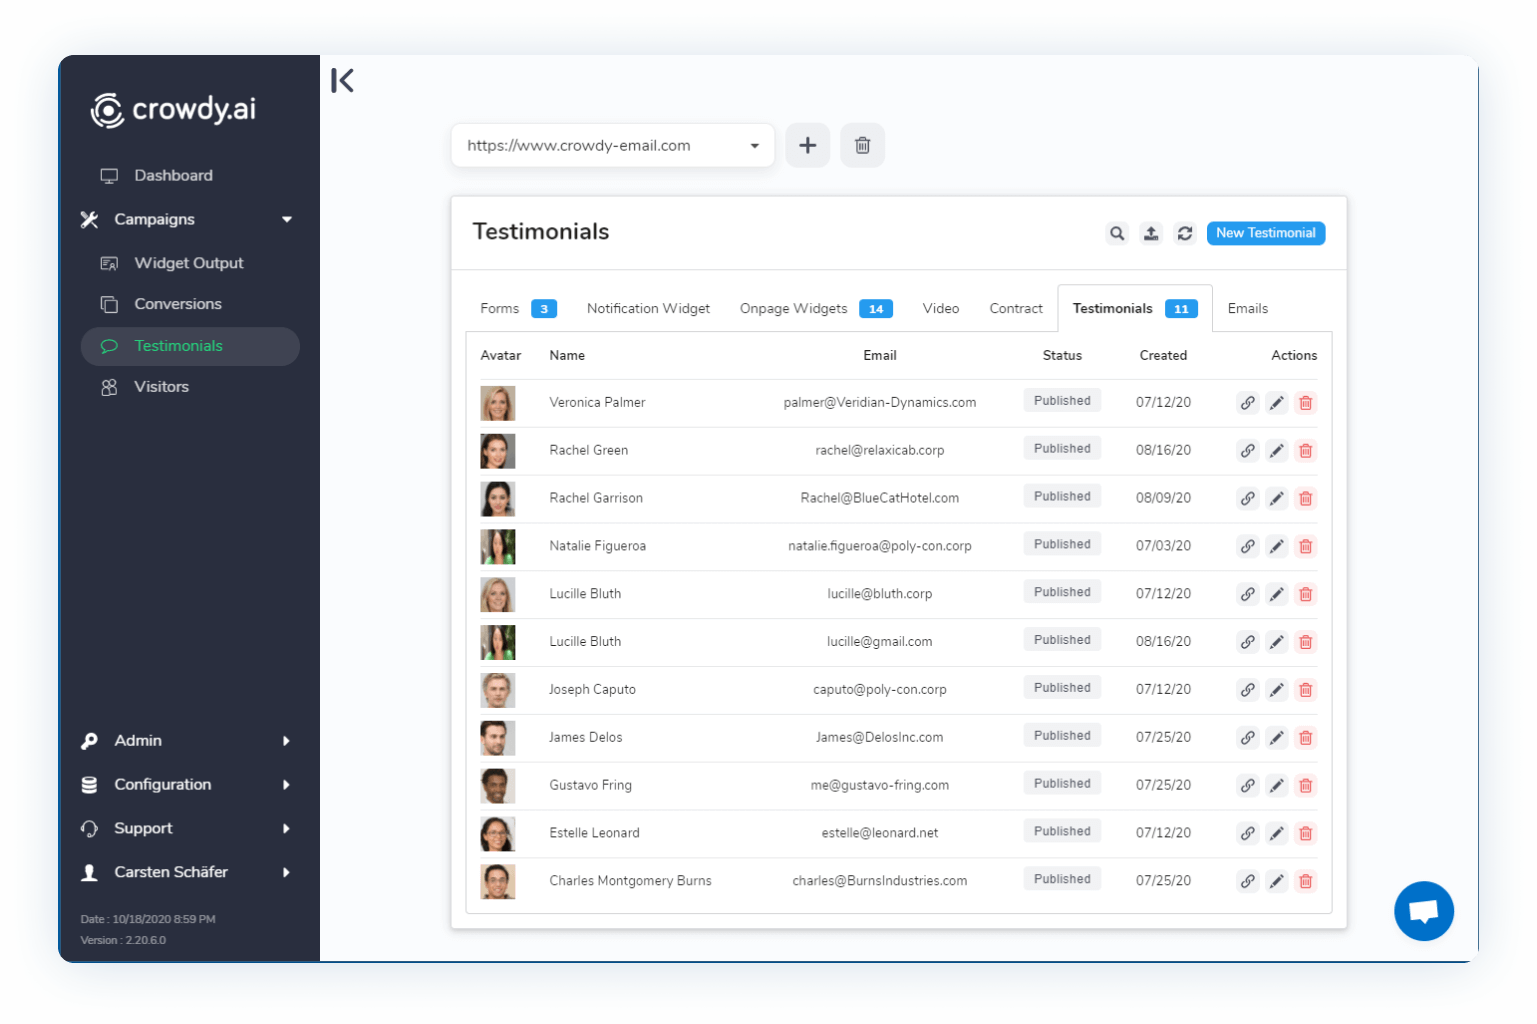 Manage testimonials in crowdy's dashboard